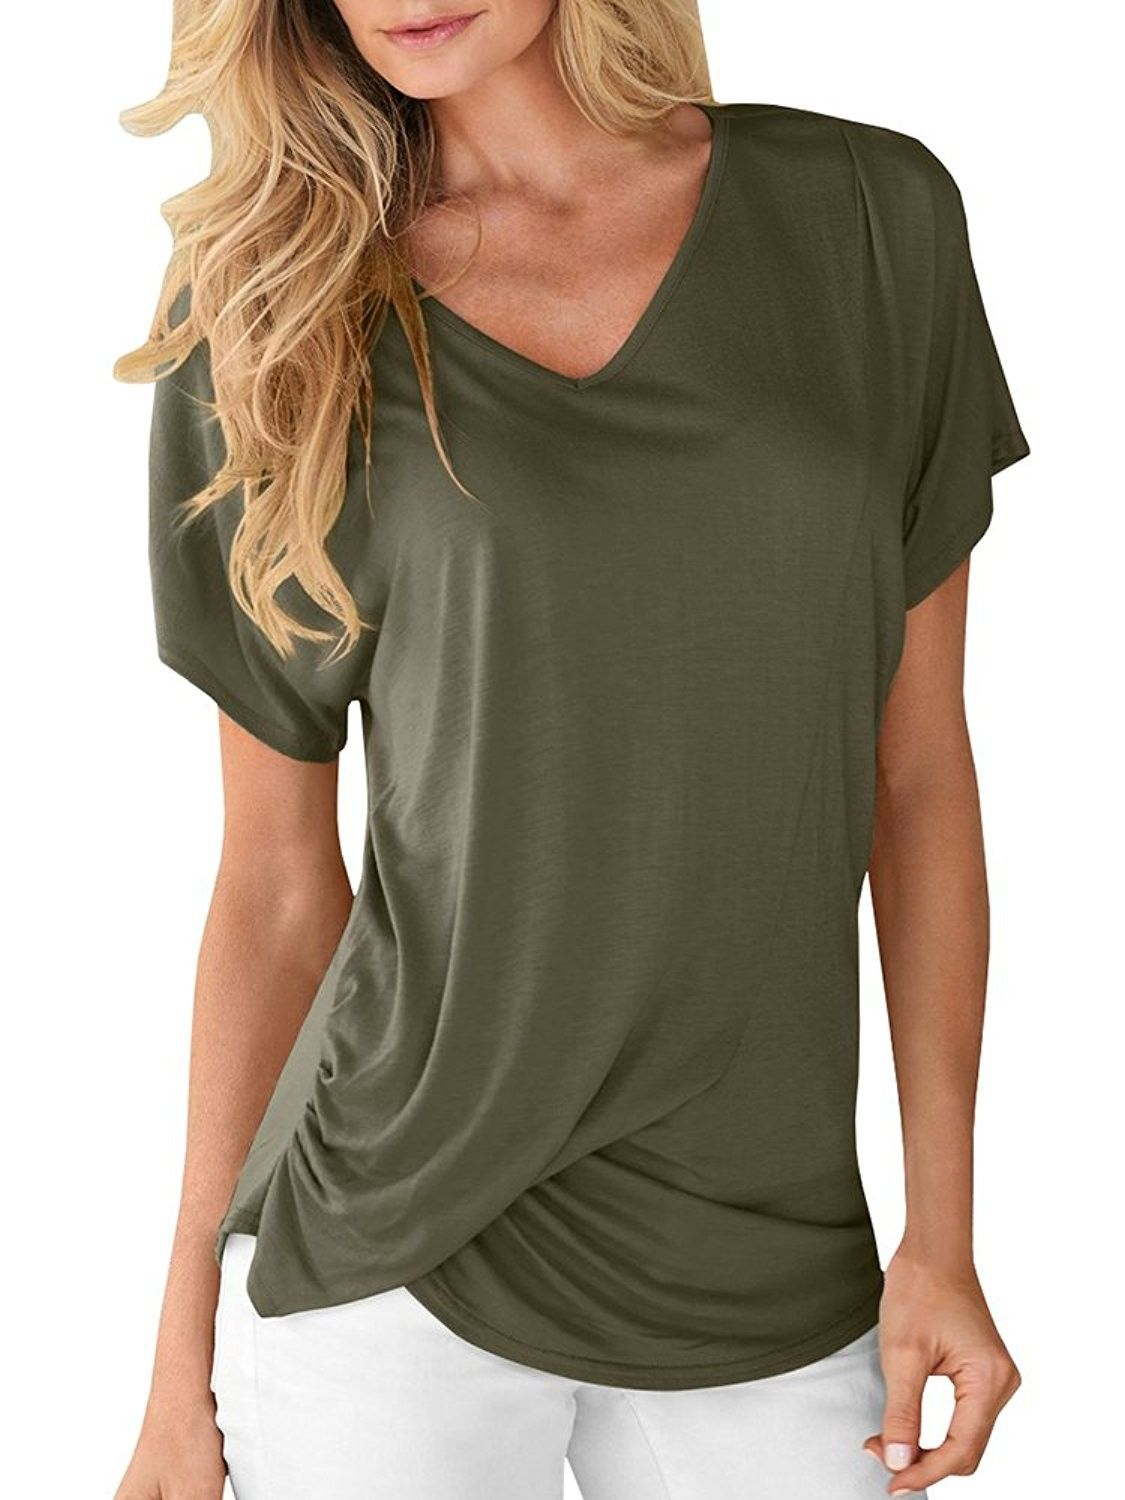 2f529b9f7c111d Women V Neck Short Short Sleeve T-Shirts Casual Tee Tops Twist Knot Basic  Blouses - Army Green - CS1800KR6ST